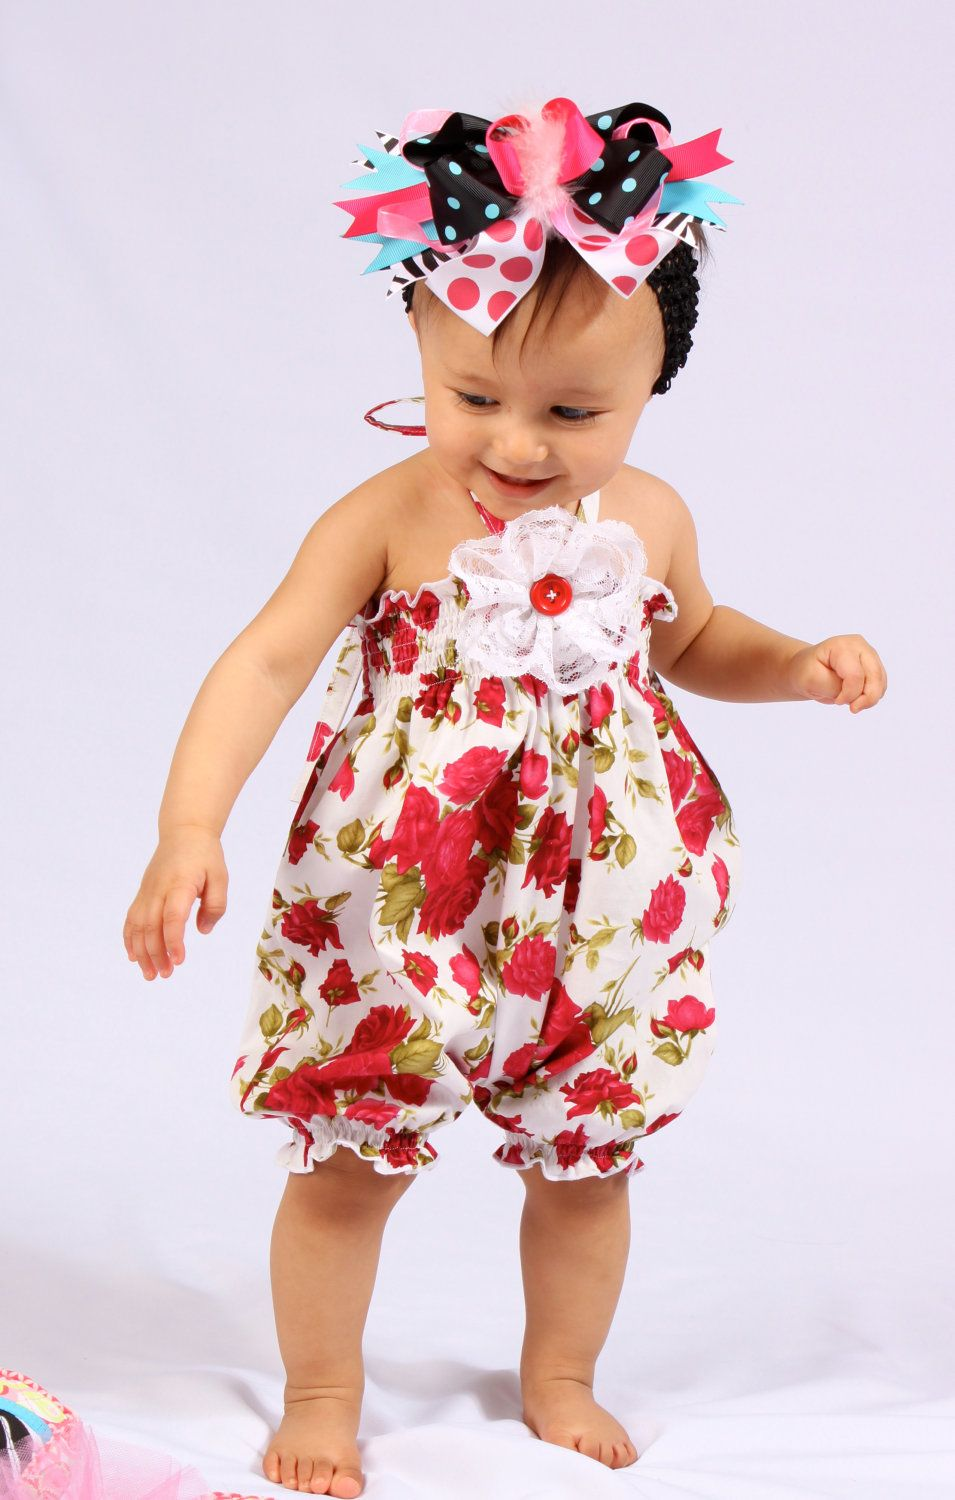 ad371ac2d UGH! My baby girl will totally wear this someday